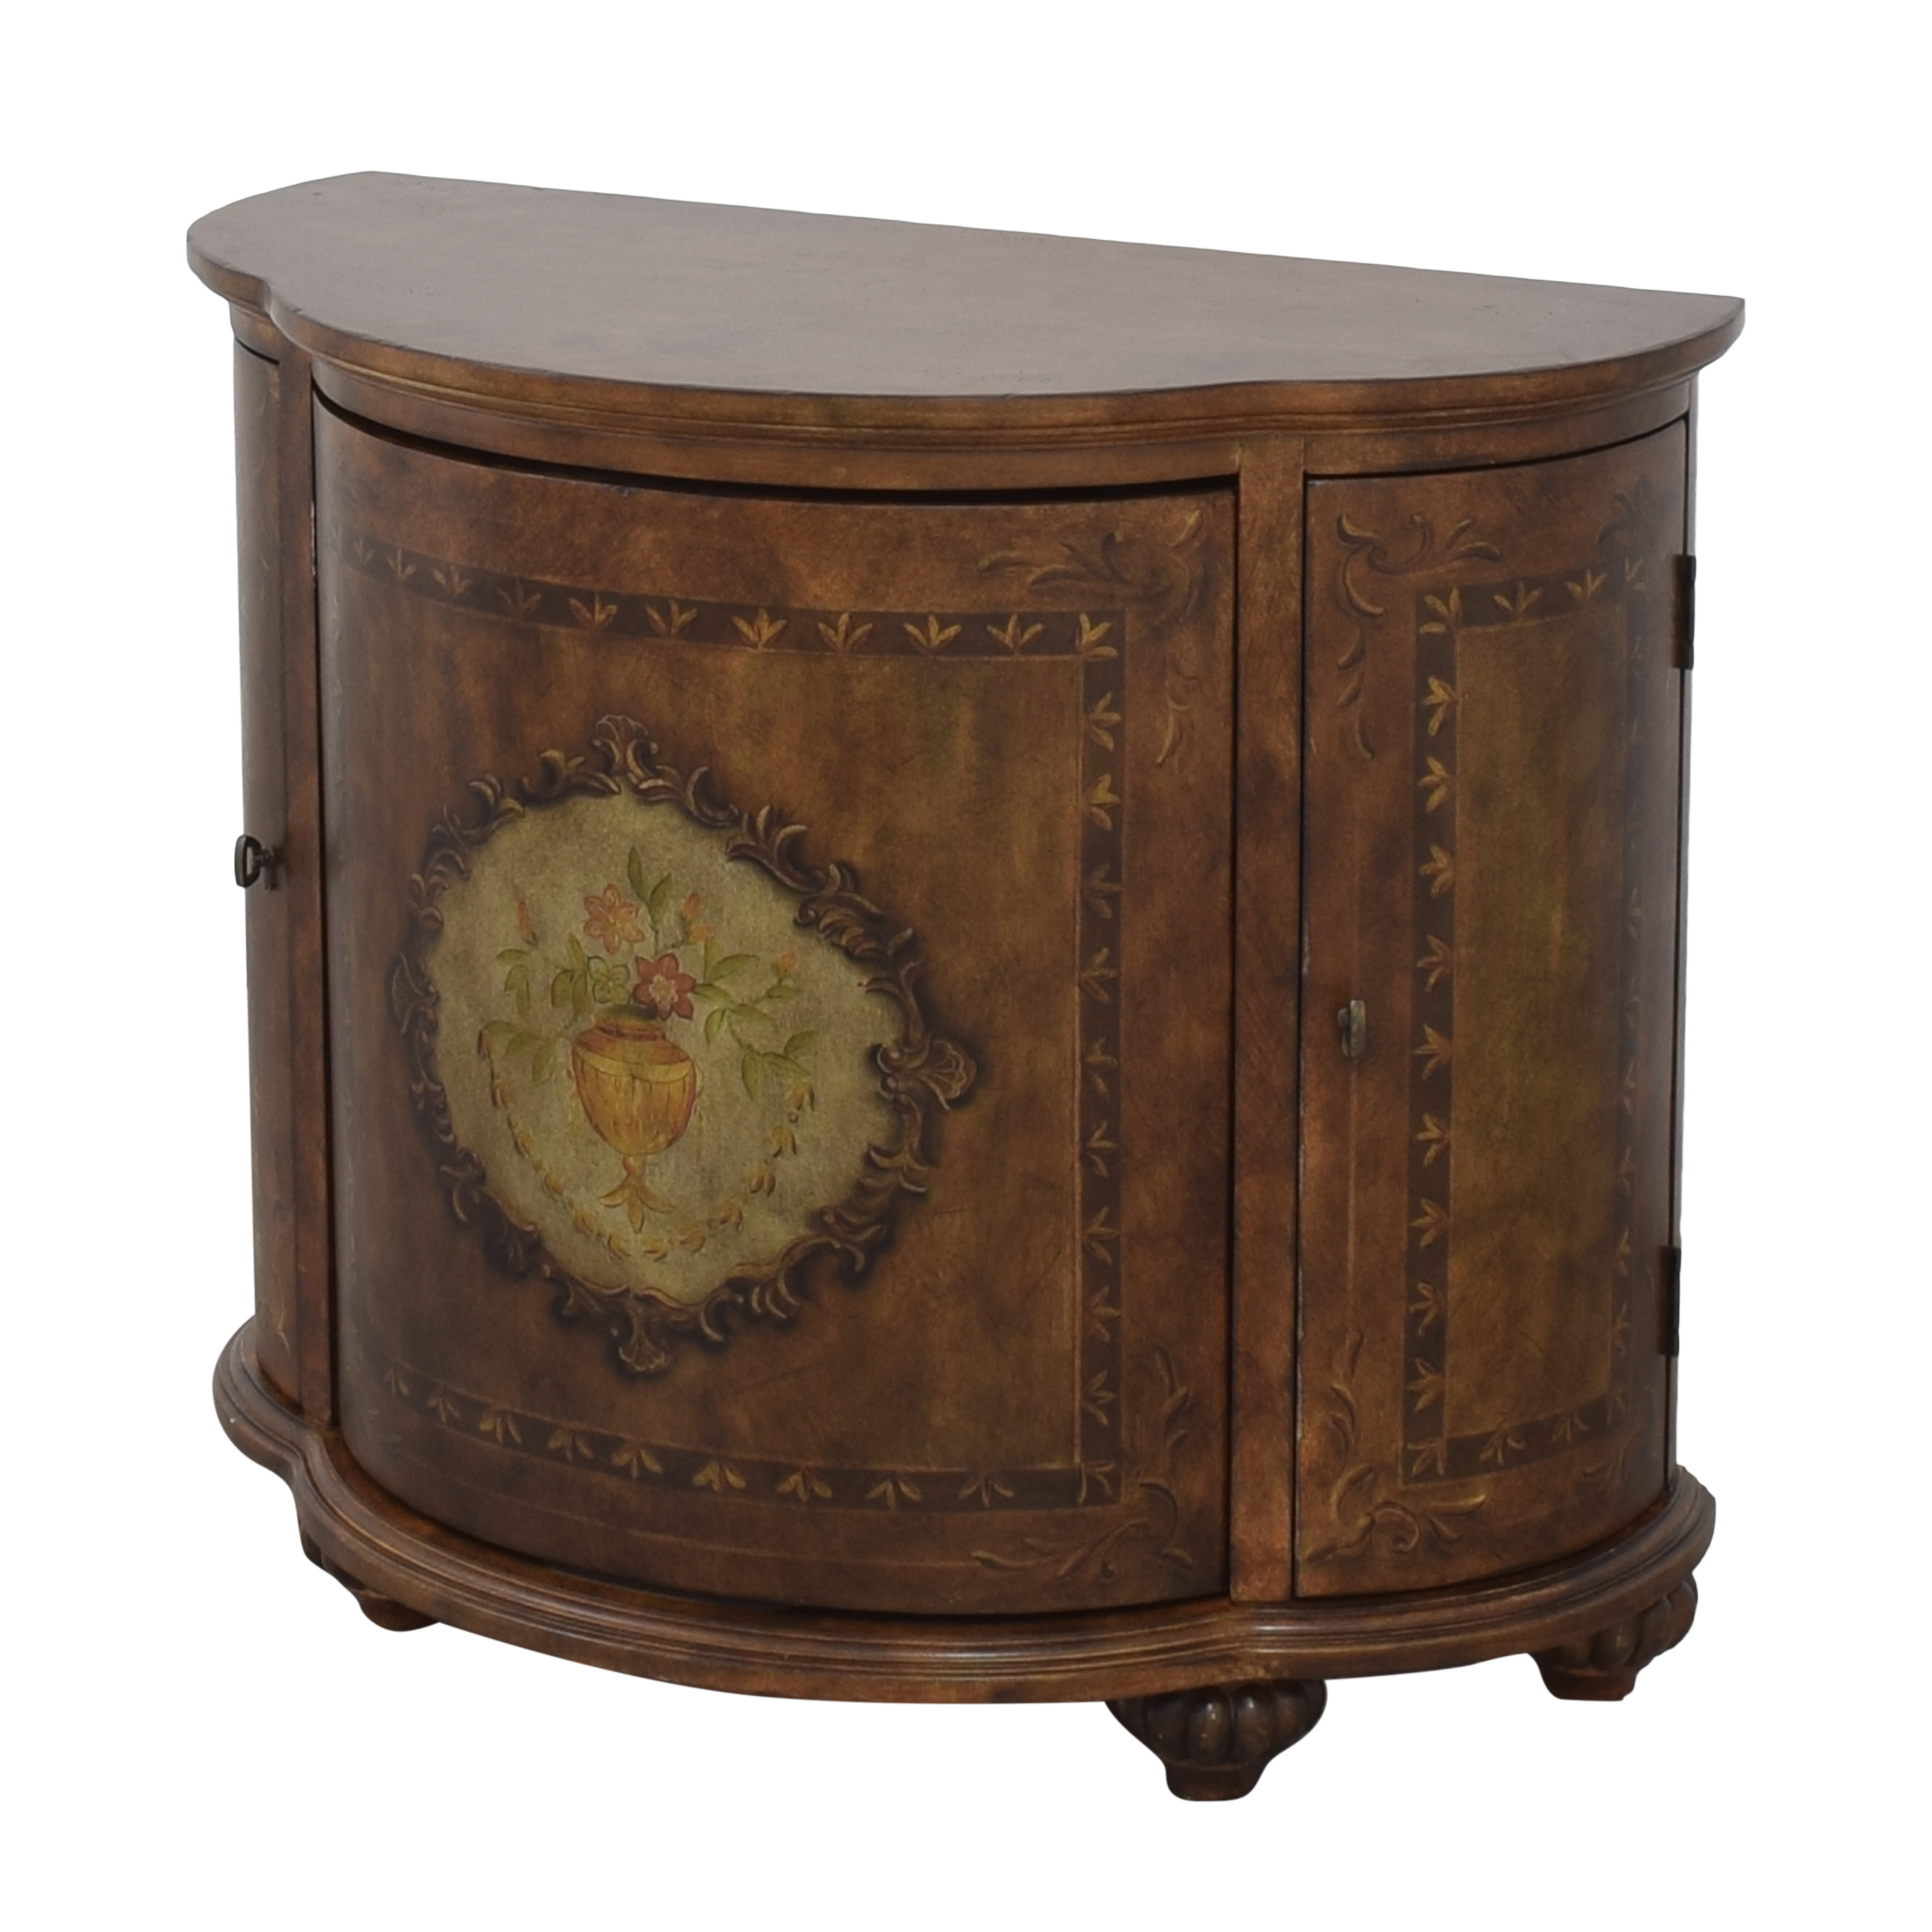 Hooker Furniture Seven Seas Accent Cabinet / Cabinets & Sideboards